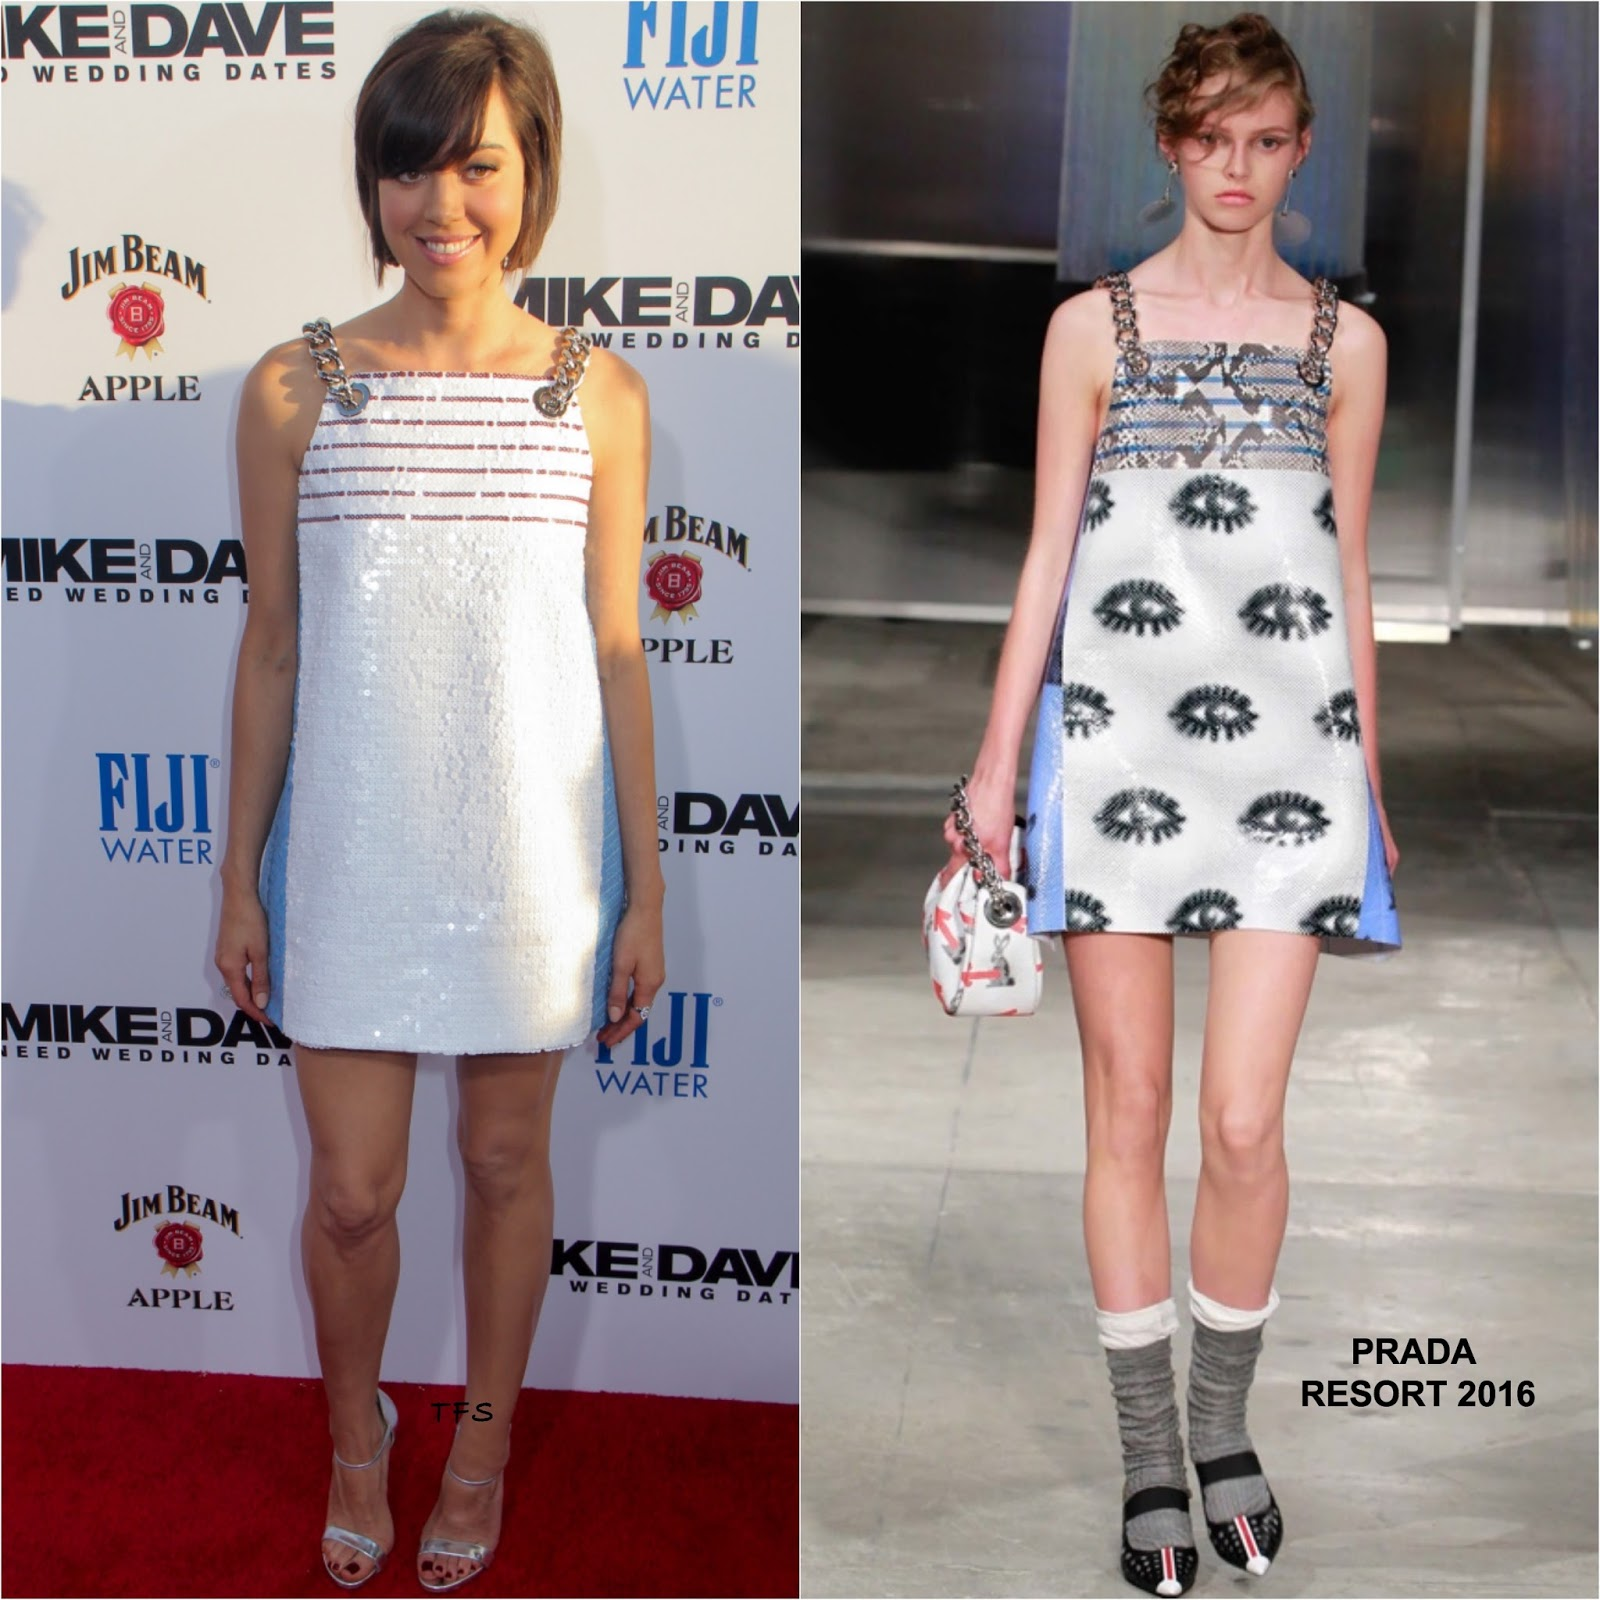 Mike And Dave Need Wedding Dates Plugged In: Aubrey Plaza In Prada At The 'Mike And Dave Need Wedding